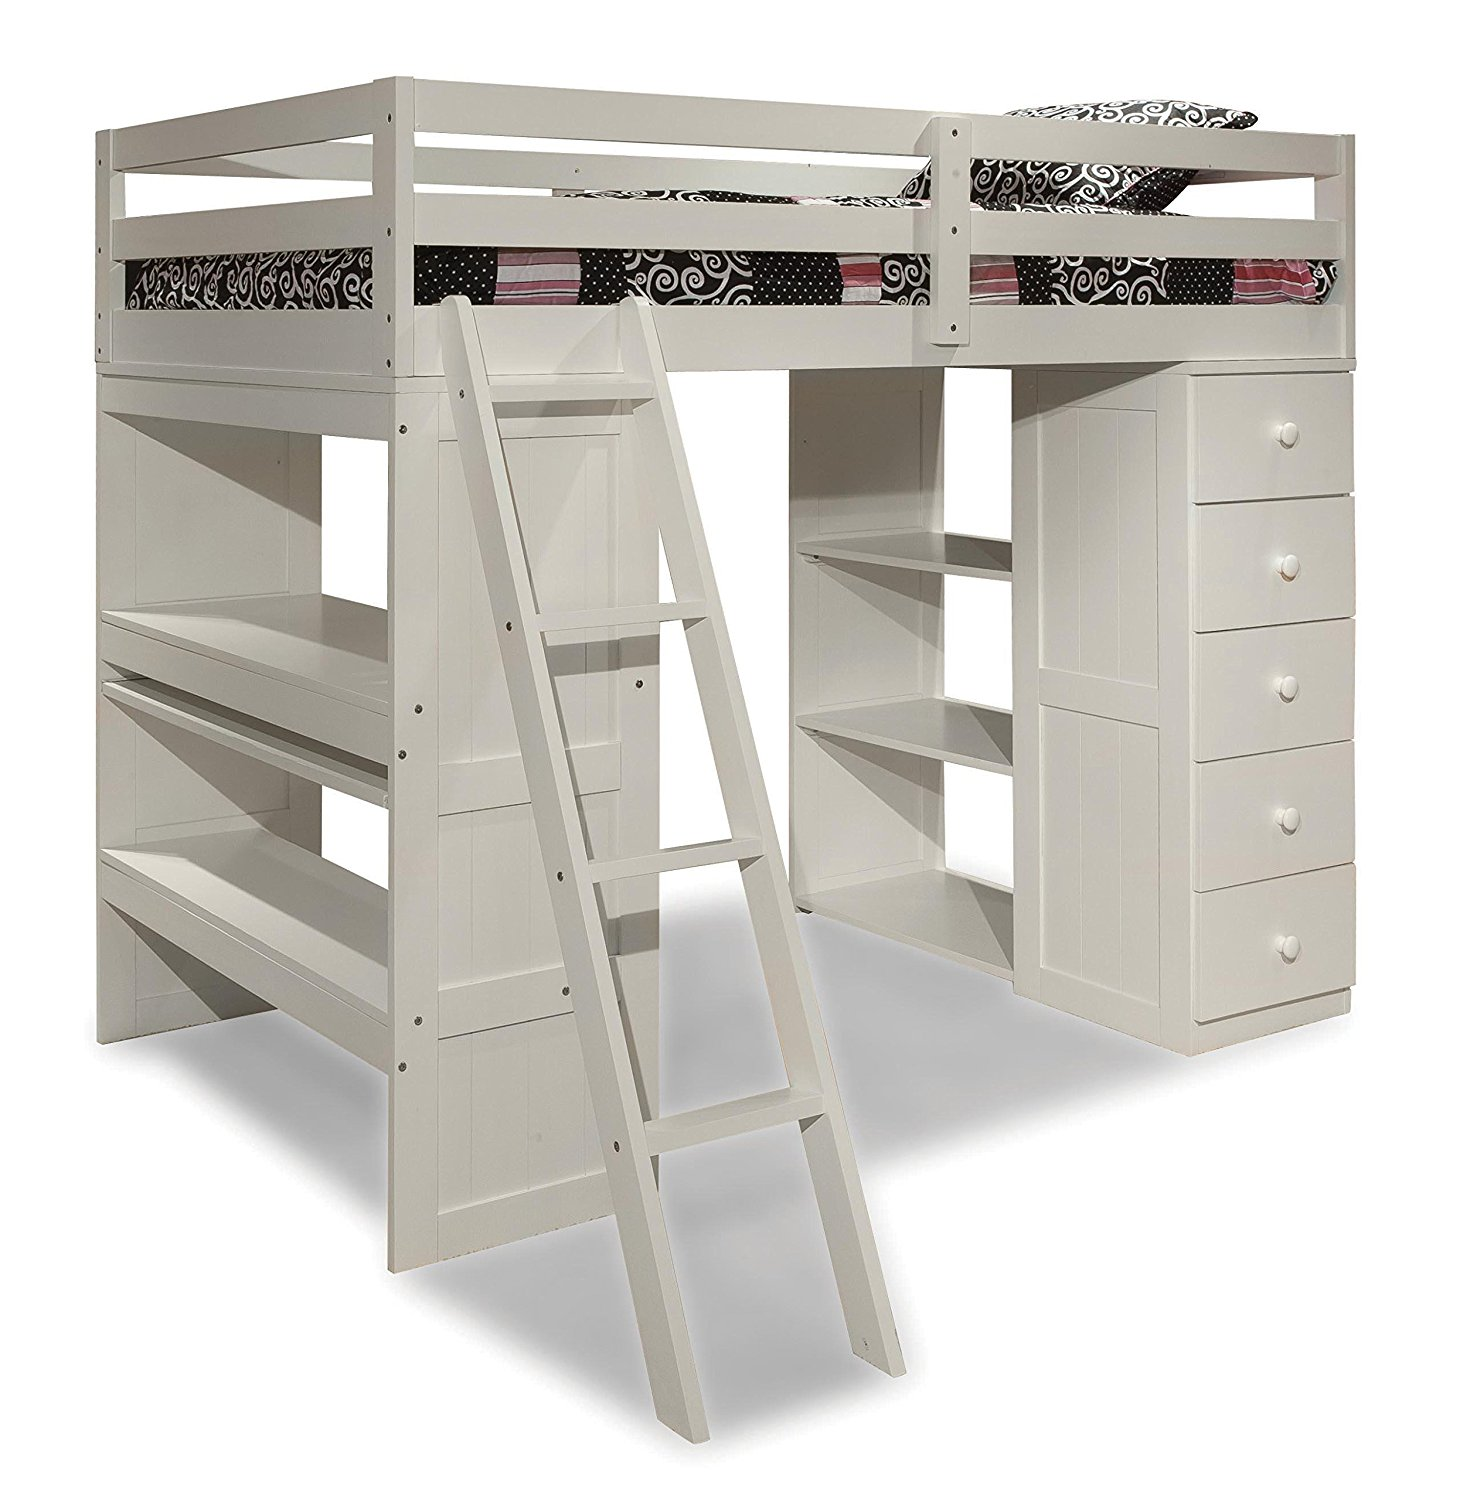 Sensational Canwood Loft Bed | Surprising Canwood Whistler Storage Loft Bed with Desk Bundle White  sc 1 st  Ondeckwithlucy.com & Bedroom: Innovative Canwood Loft Bed For Your Kids Bedroom Ideas ...